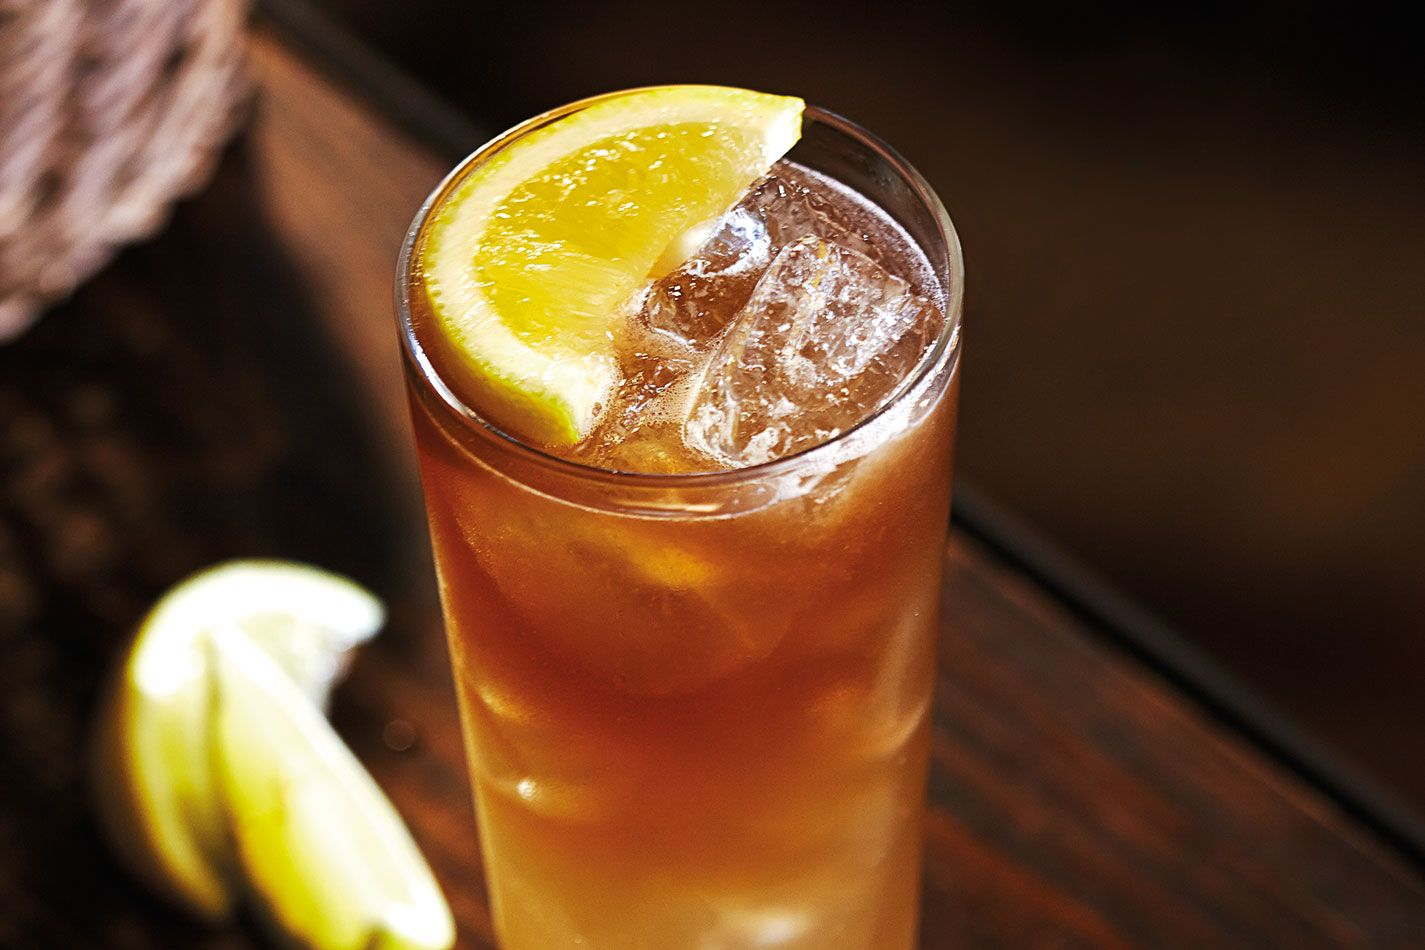 iced tea asian iced tea iced lychees darkside iced tea smoky iced tea ...